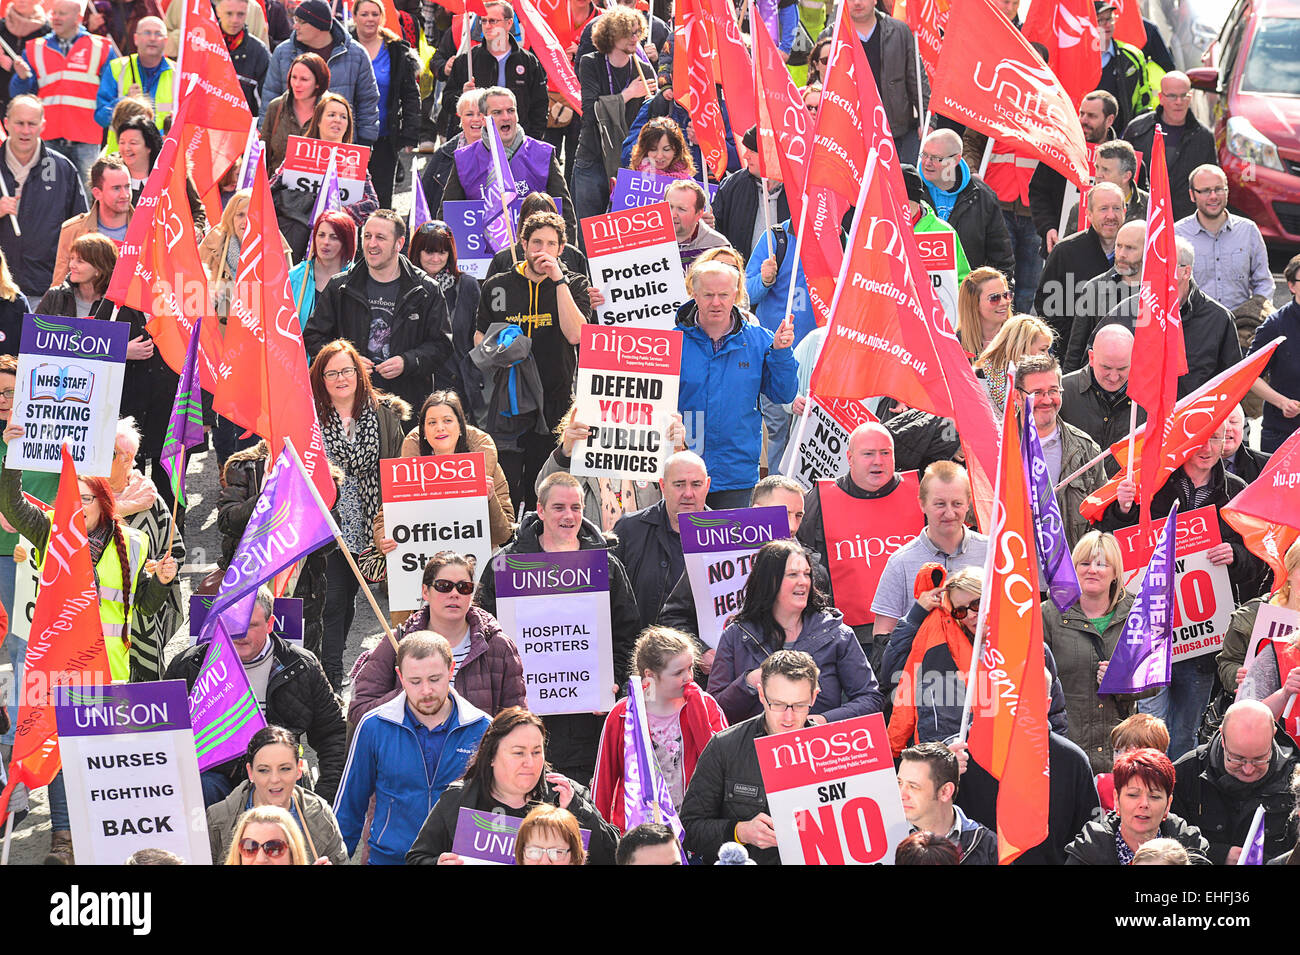 Londonderry, Northern Ireland, UK. 13th March, 2015. Trade unionists attend protest rally in Londonderry. Public - Stock Image